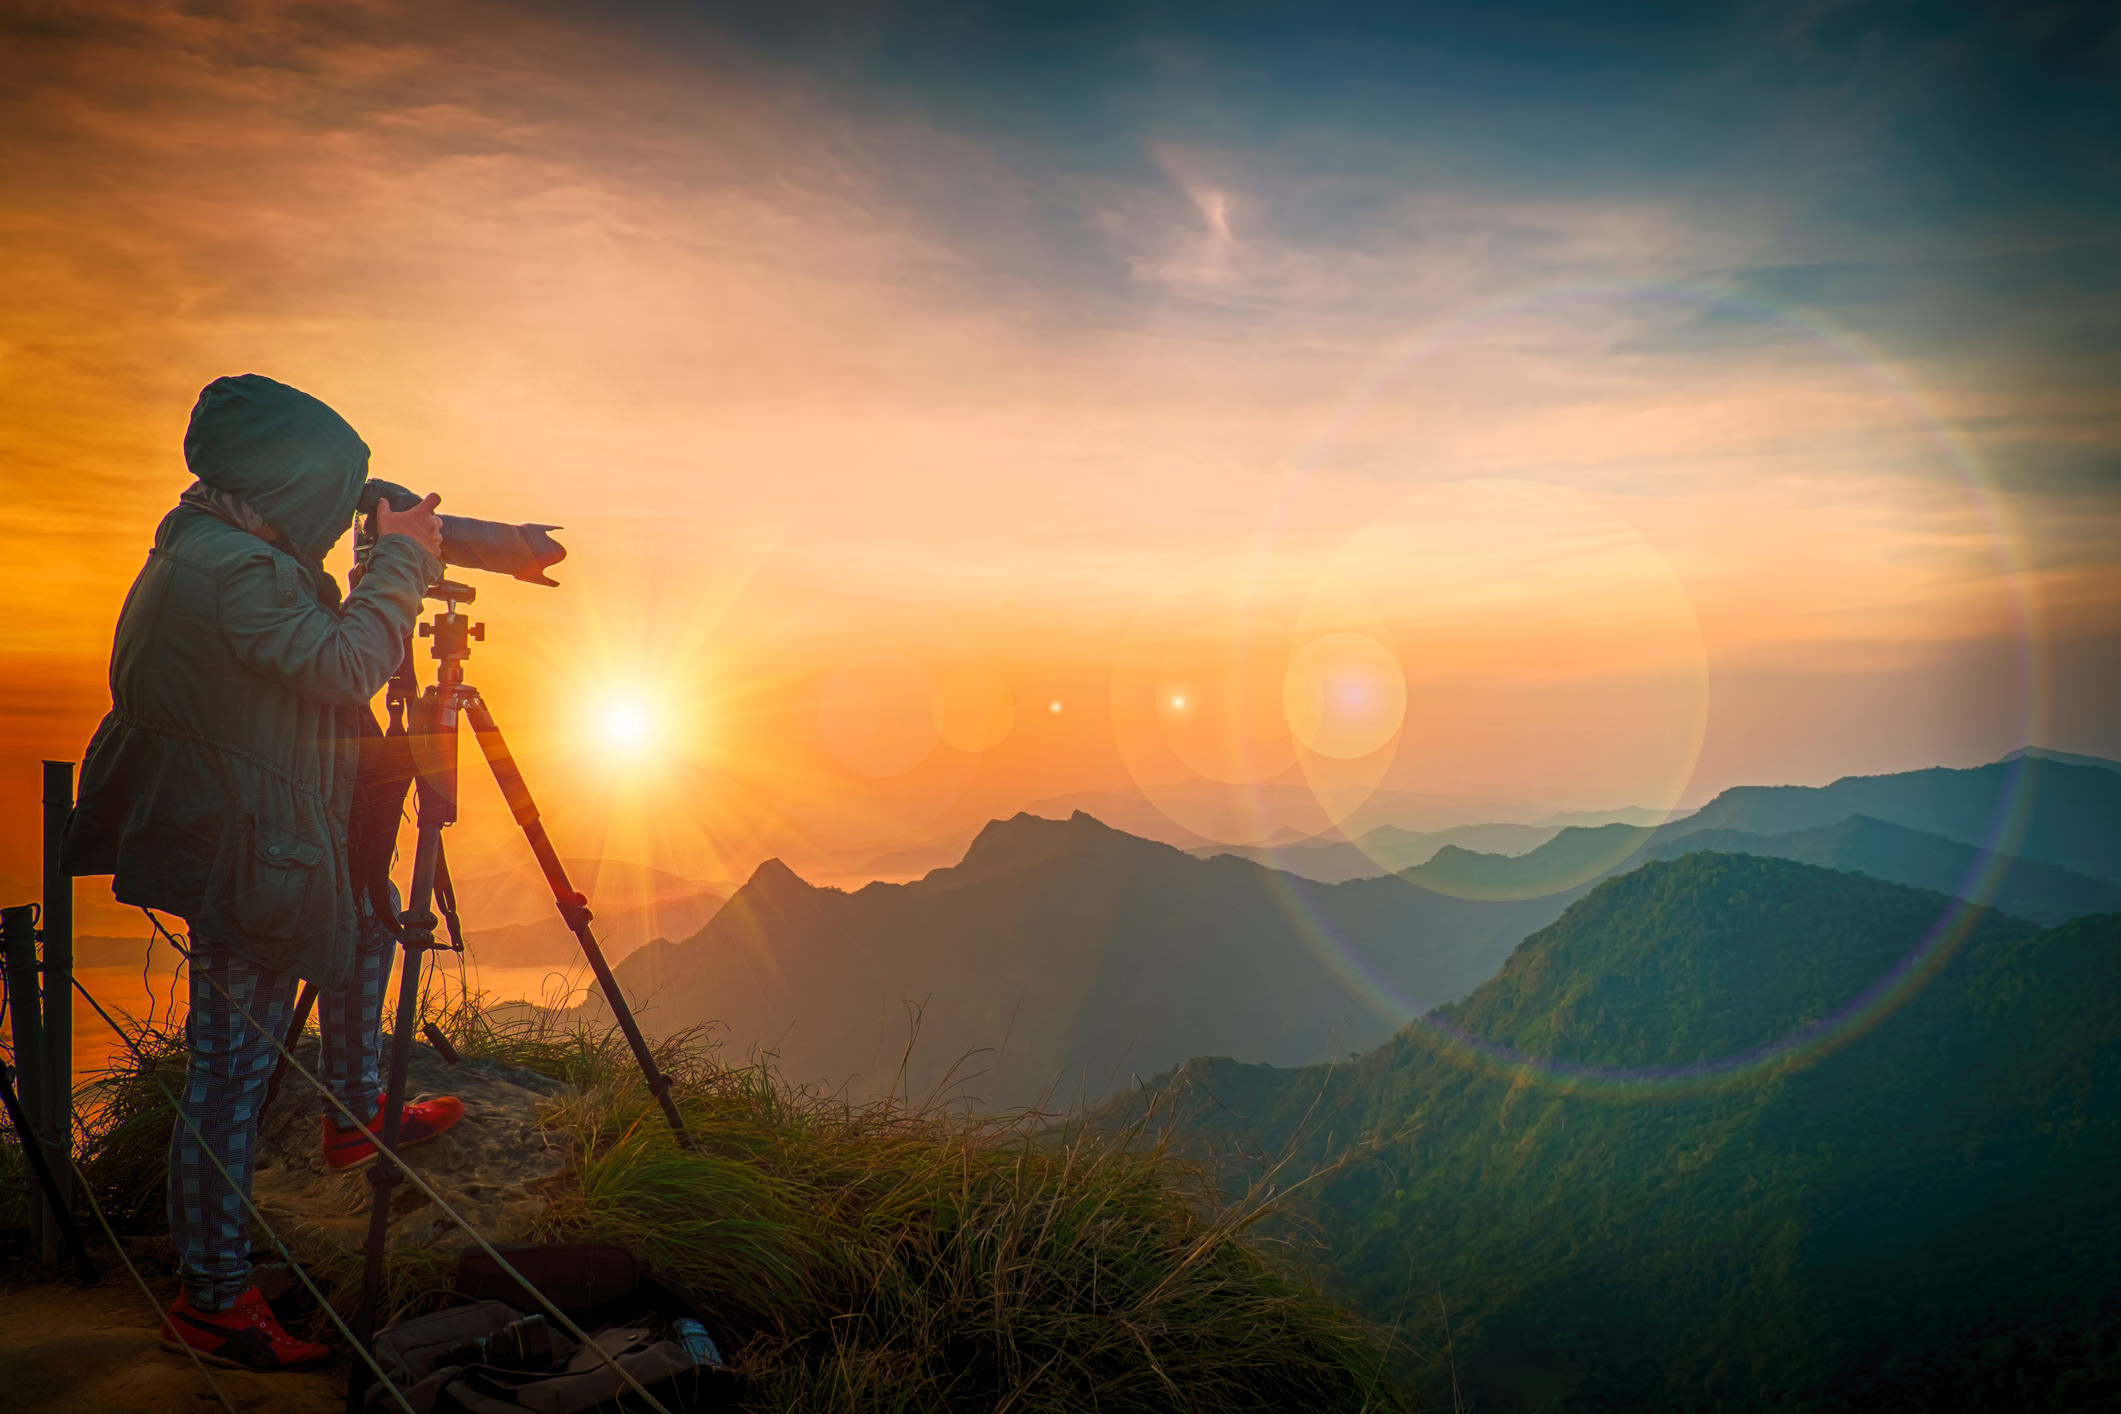 Landscape Photography Accessories You Need in Your Camera Bag